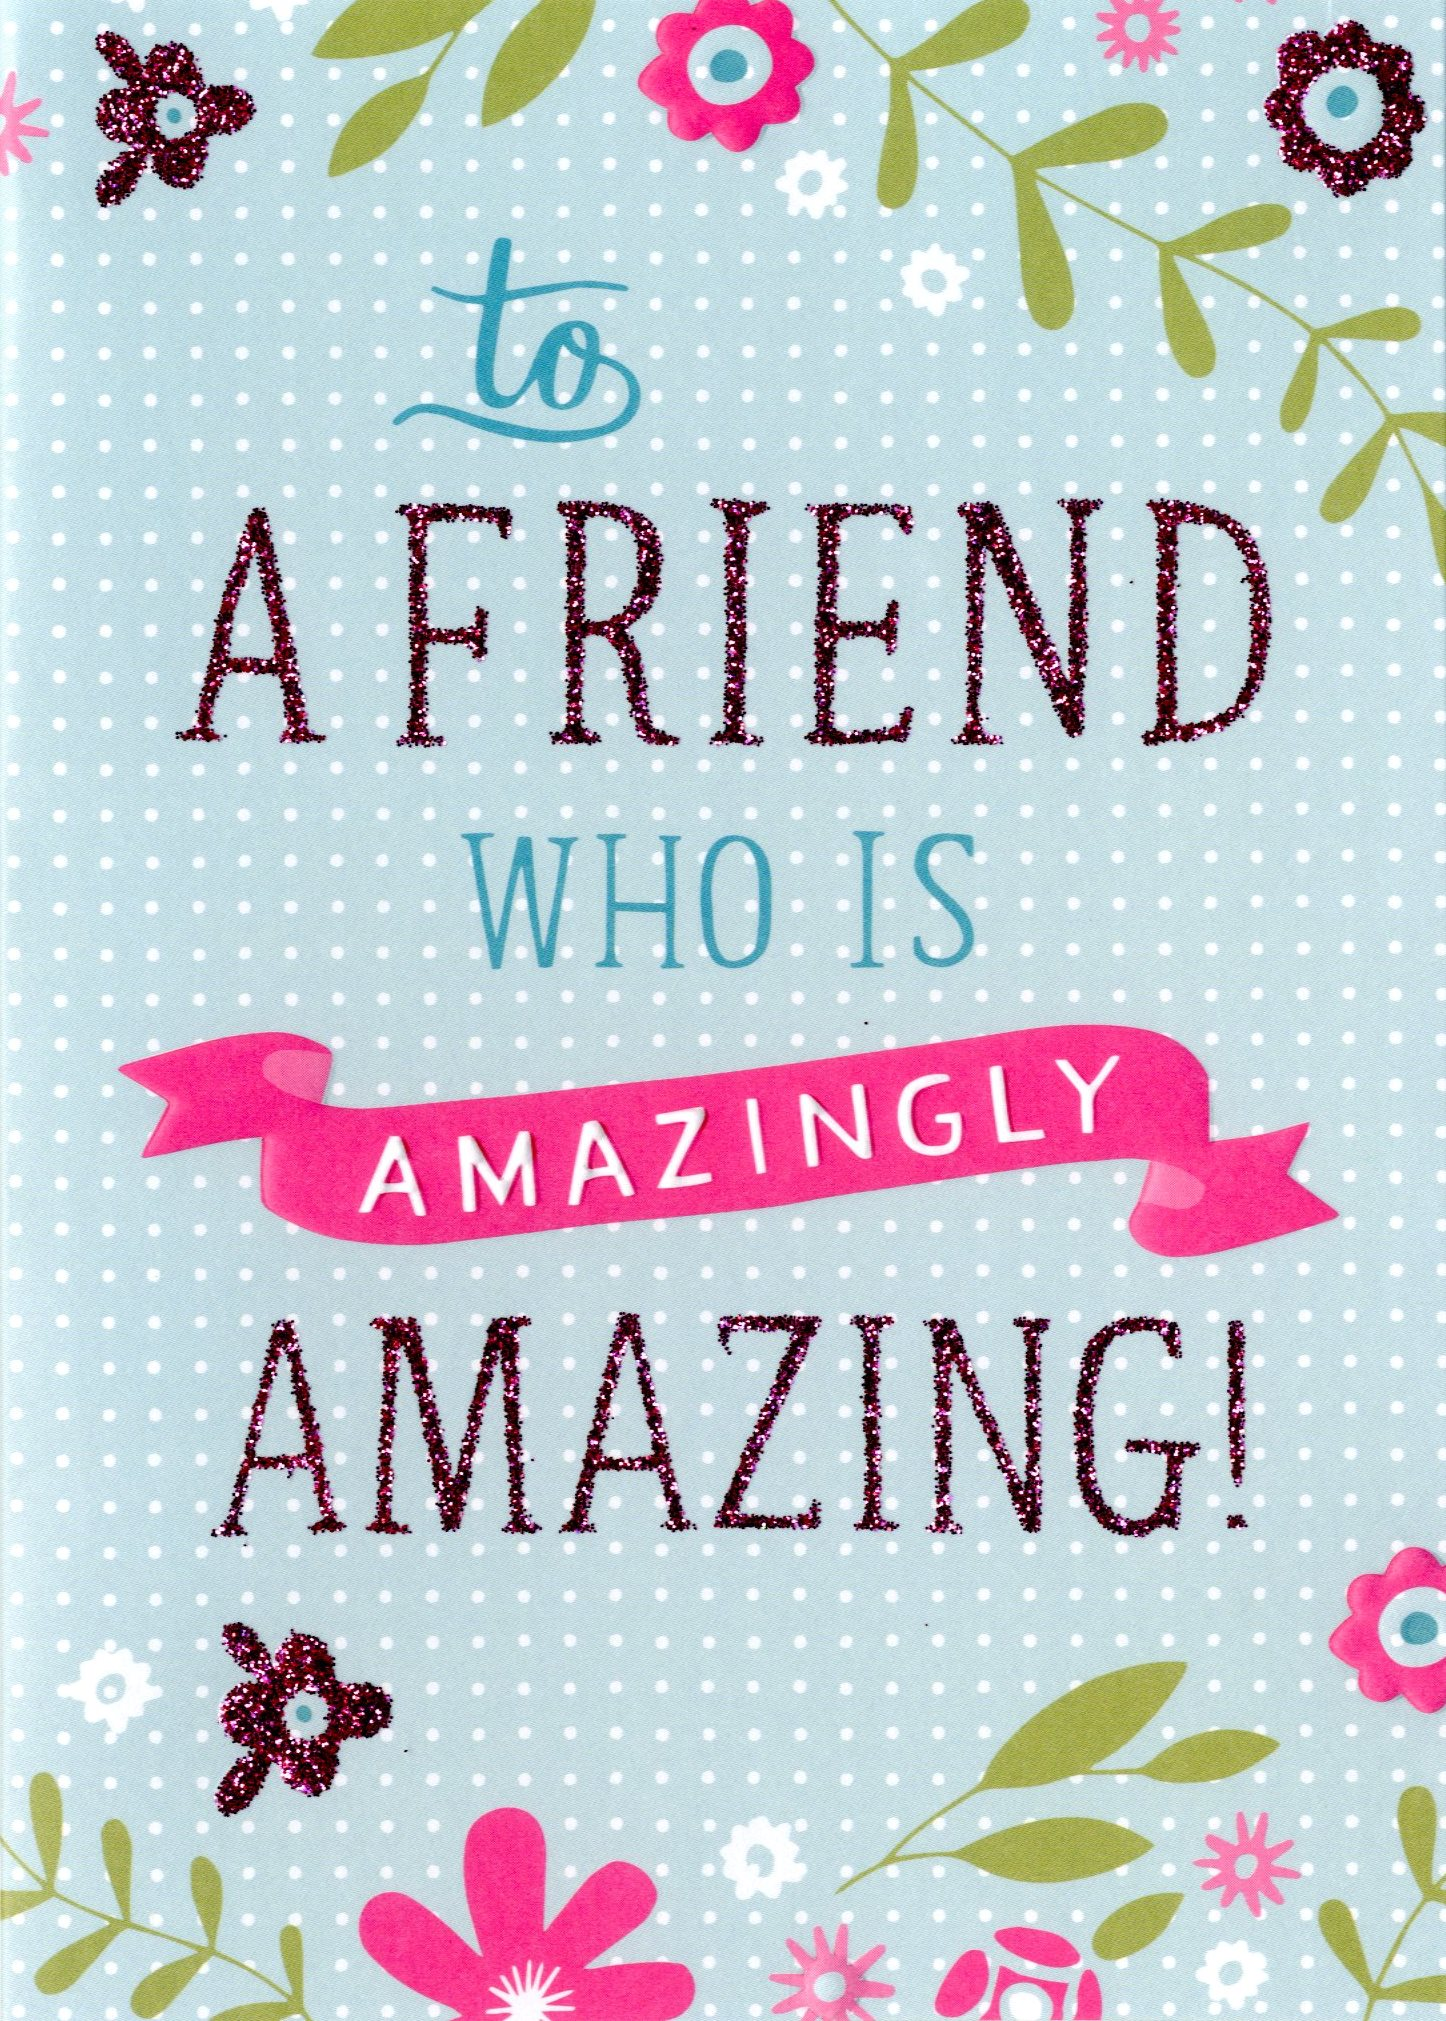 Amazingly amazing friend birthday card cards love kates amazingly amazing friend birthday card bookmarktalkfo Image collections